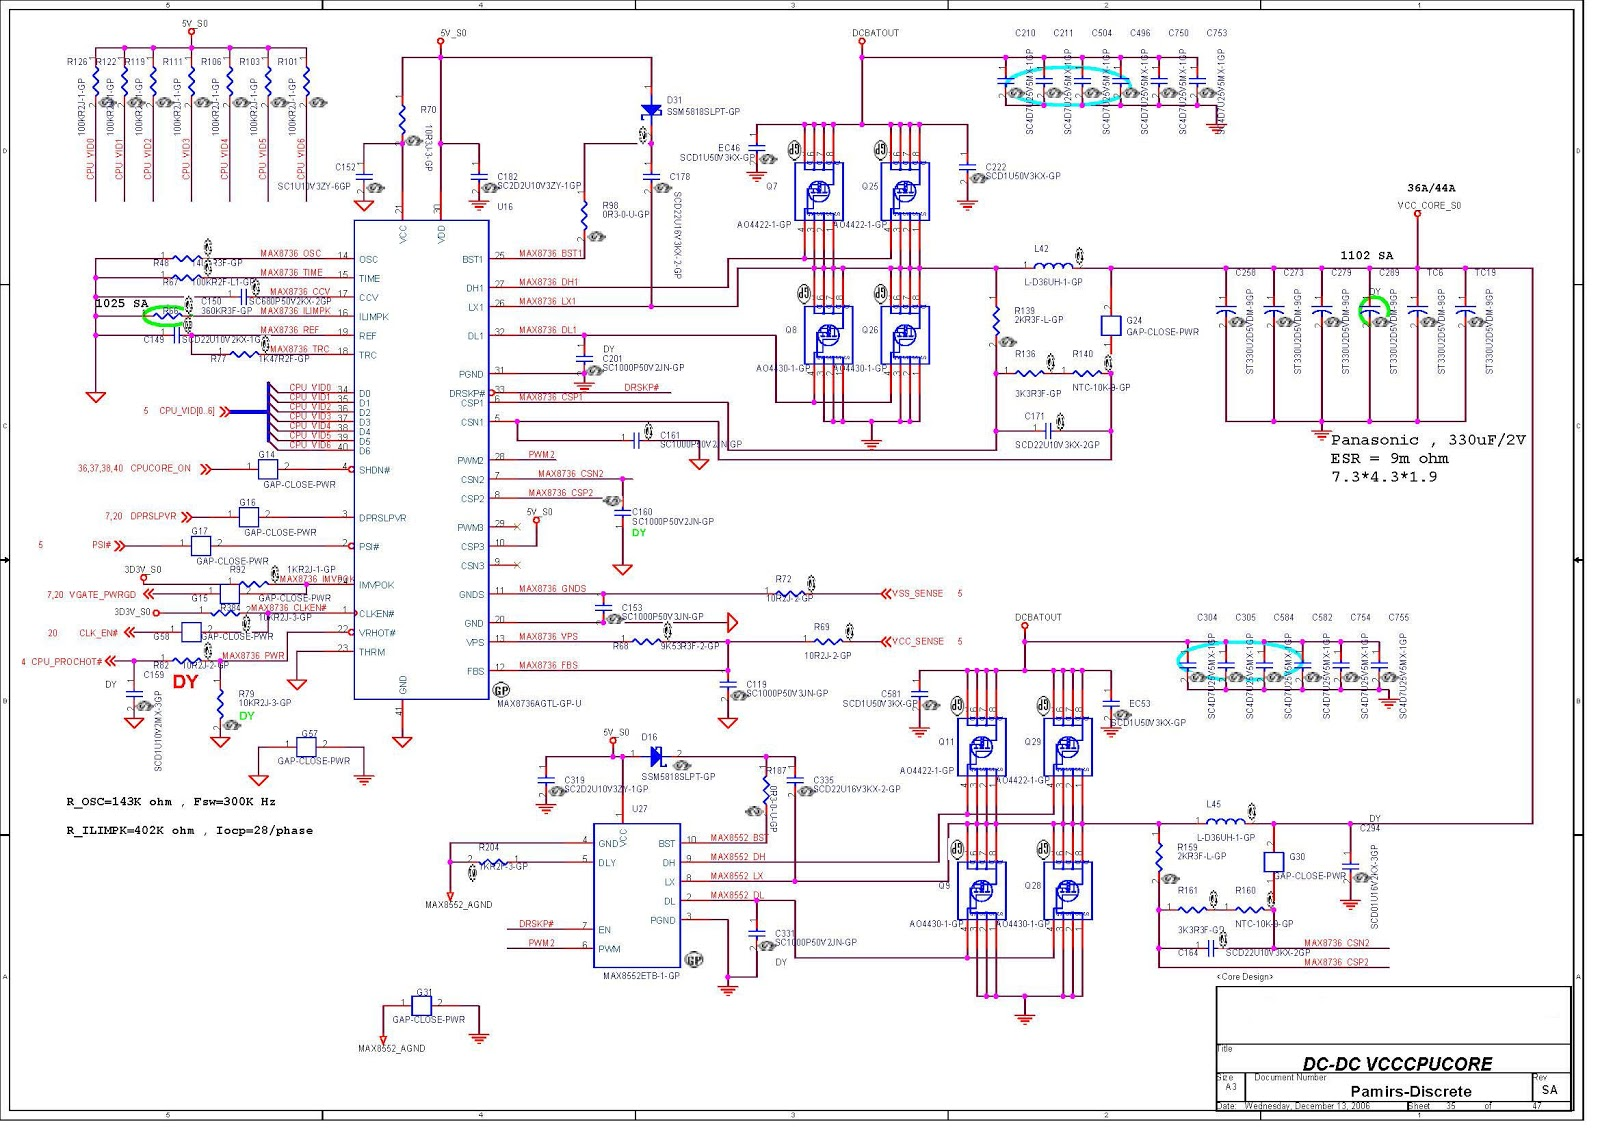 compaq wiring diagrams wiring diagrams for compaq pc wiring diagram wiring diagram compaq wiring diagrams [ 1600 x 1131 Pixel ]